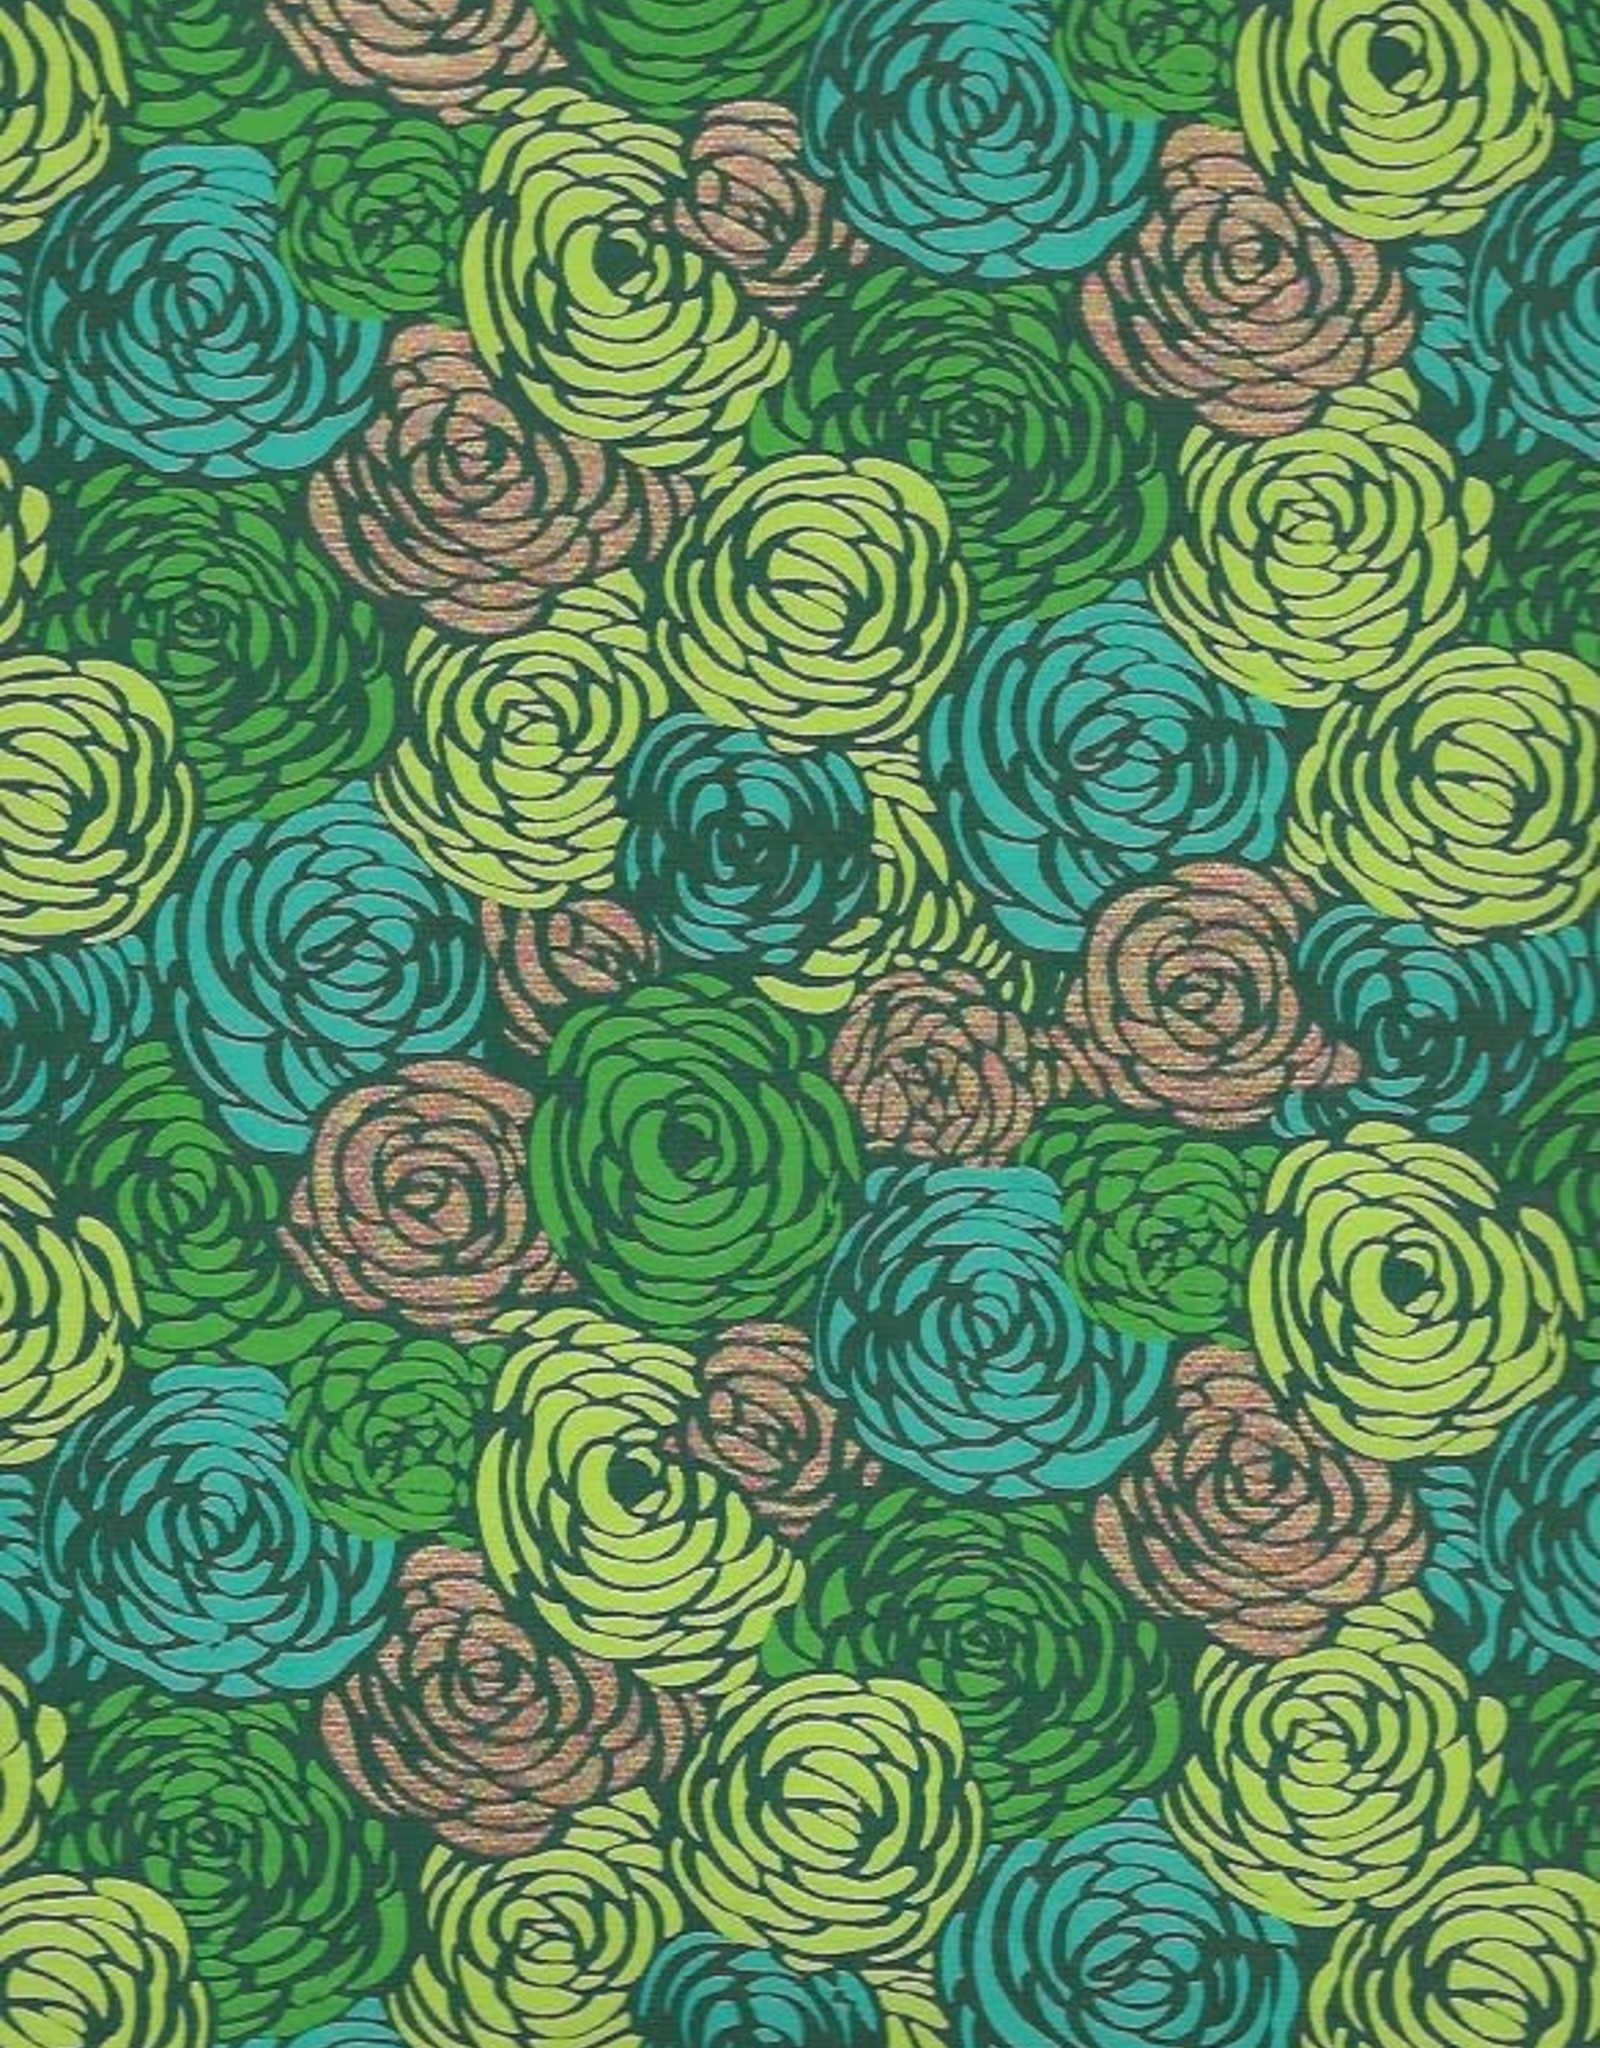 """Green Roses on Green with Teal, Lime and Gold, 22"""" x 30"""""""